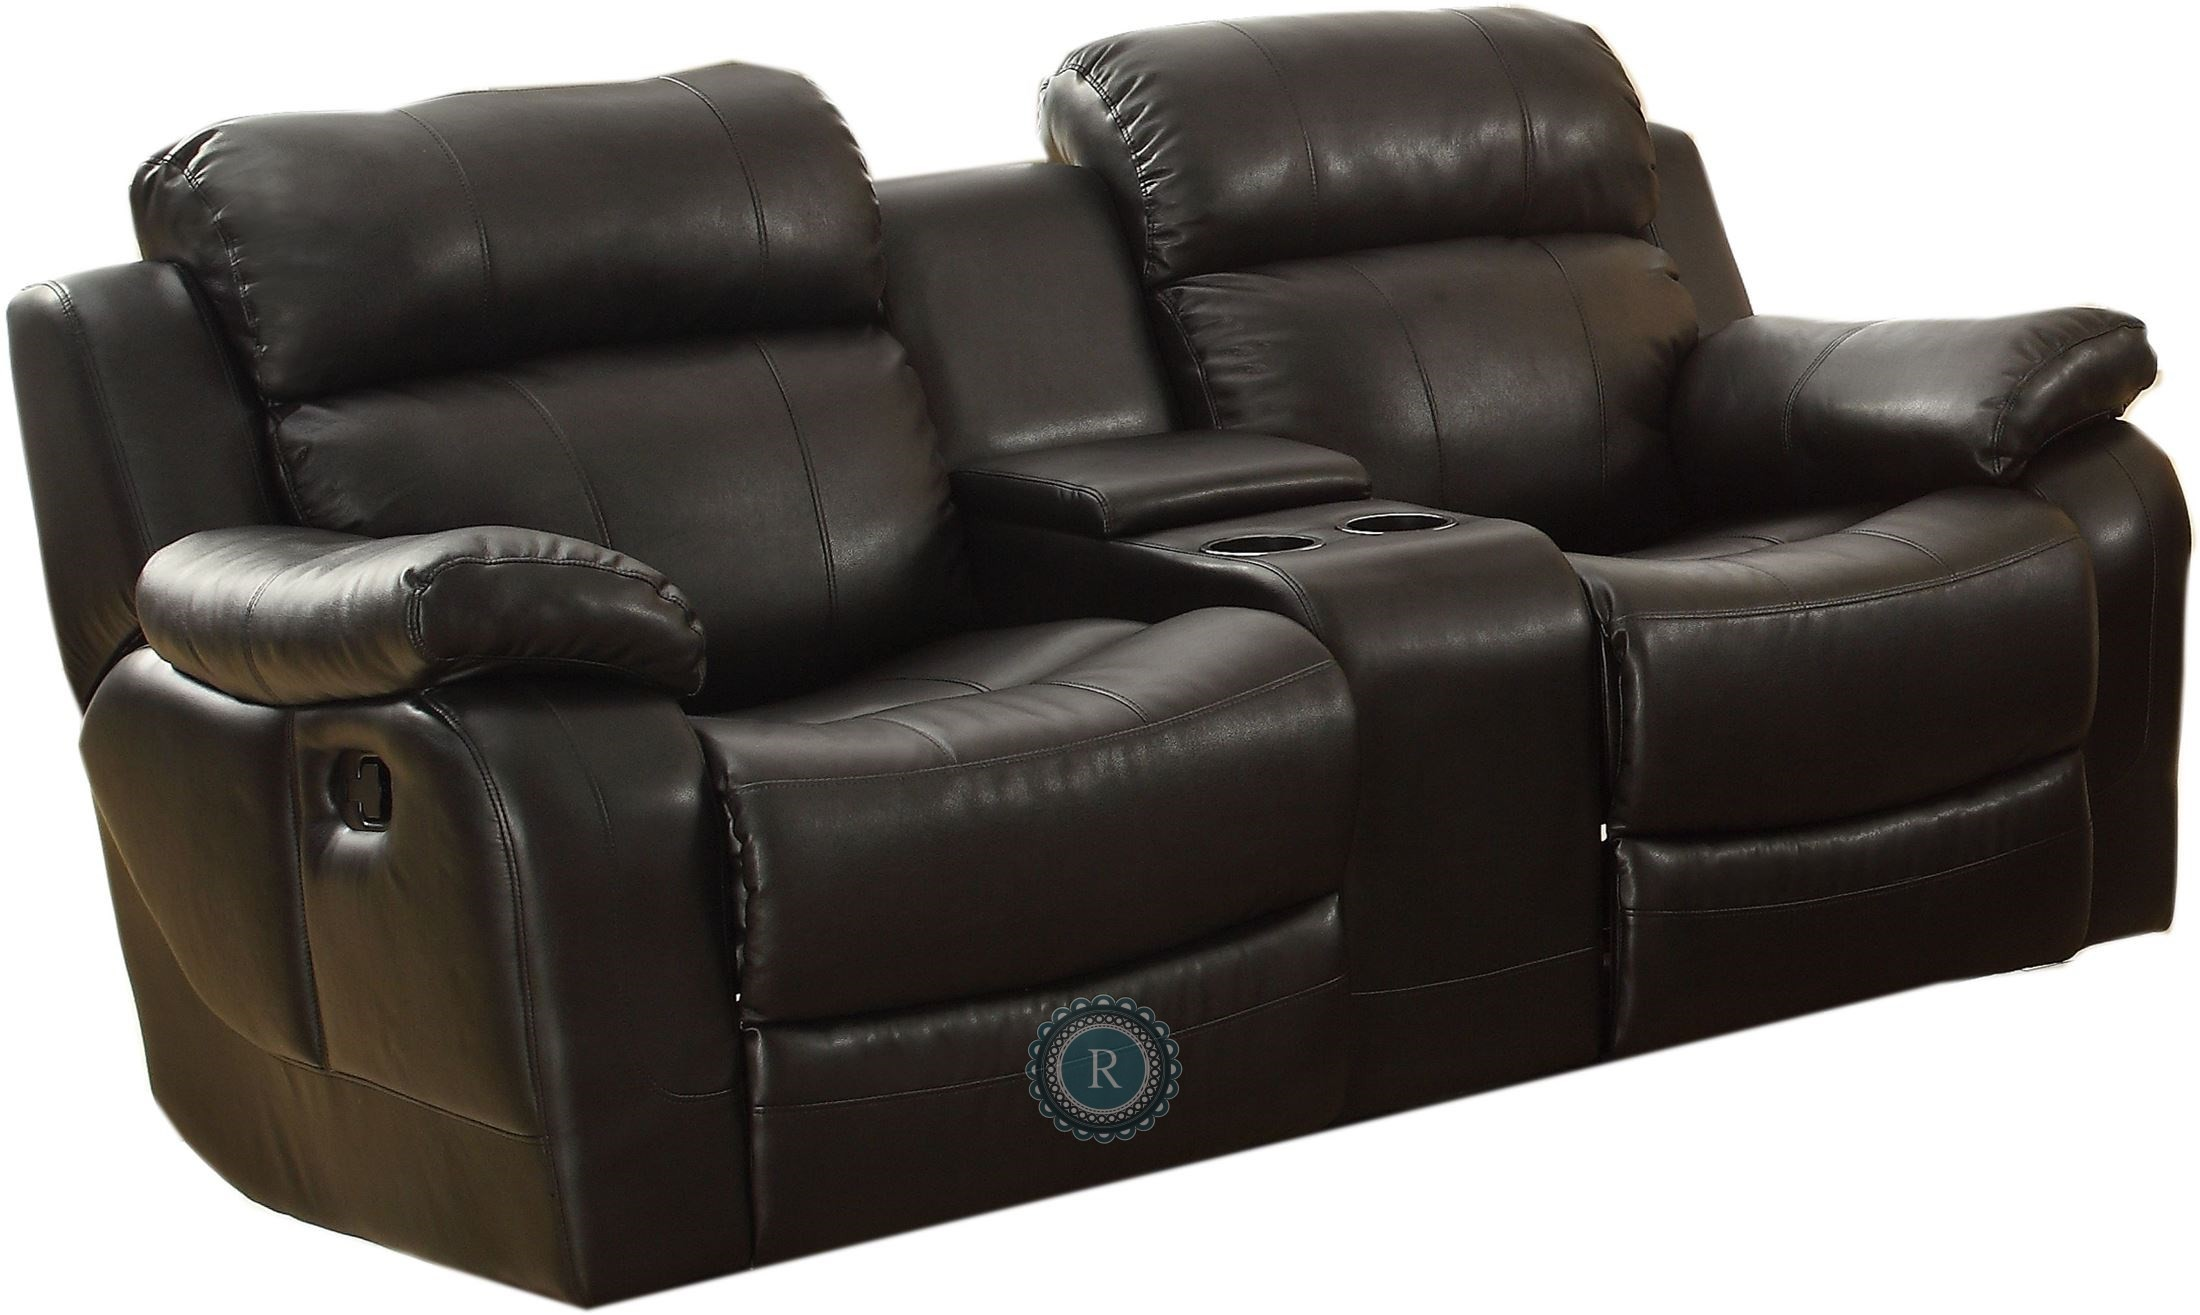 black reclining sofa with console lights marille double glider loveseat center